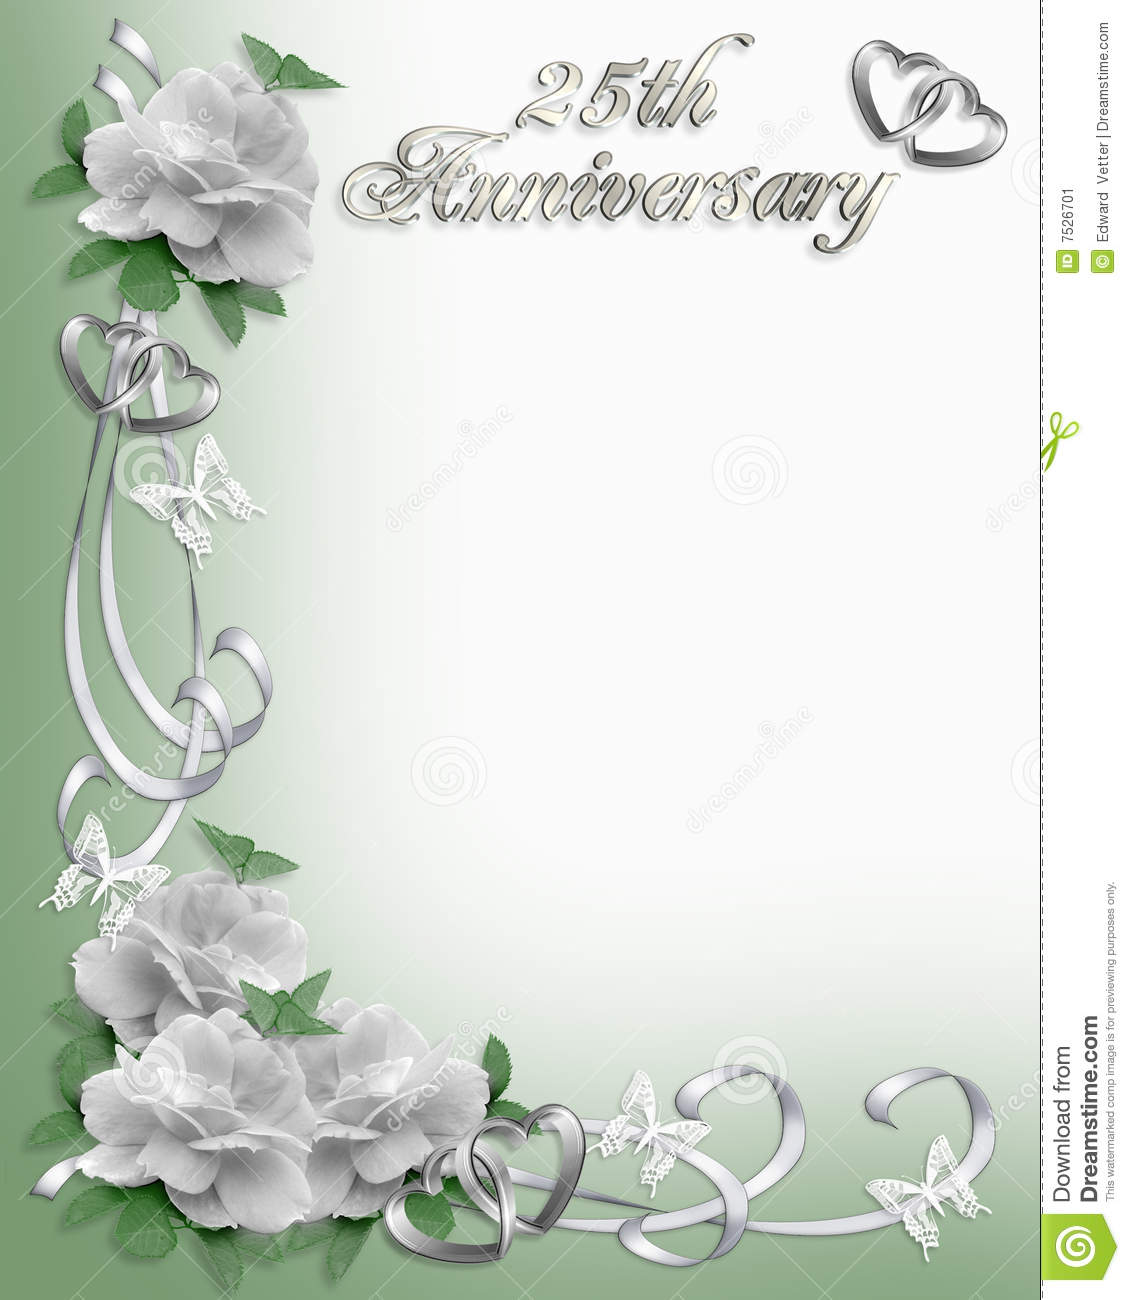 25th Anniversary Invitation Border Illustration 7526701 Megapixl